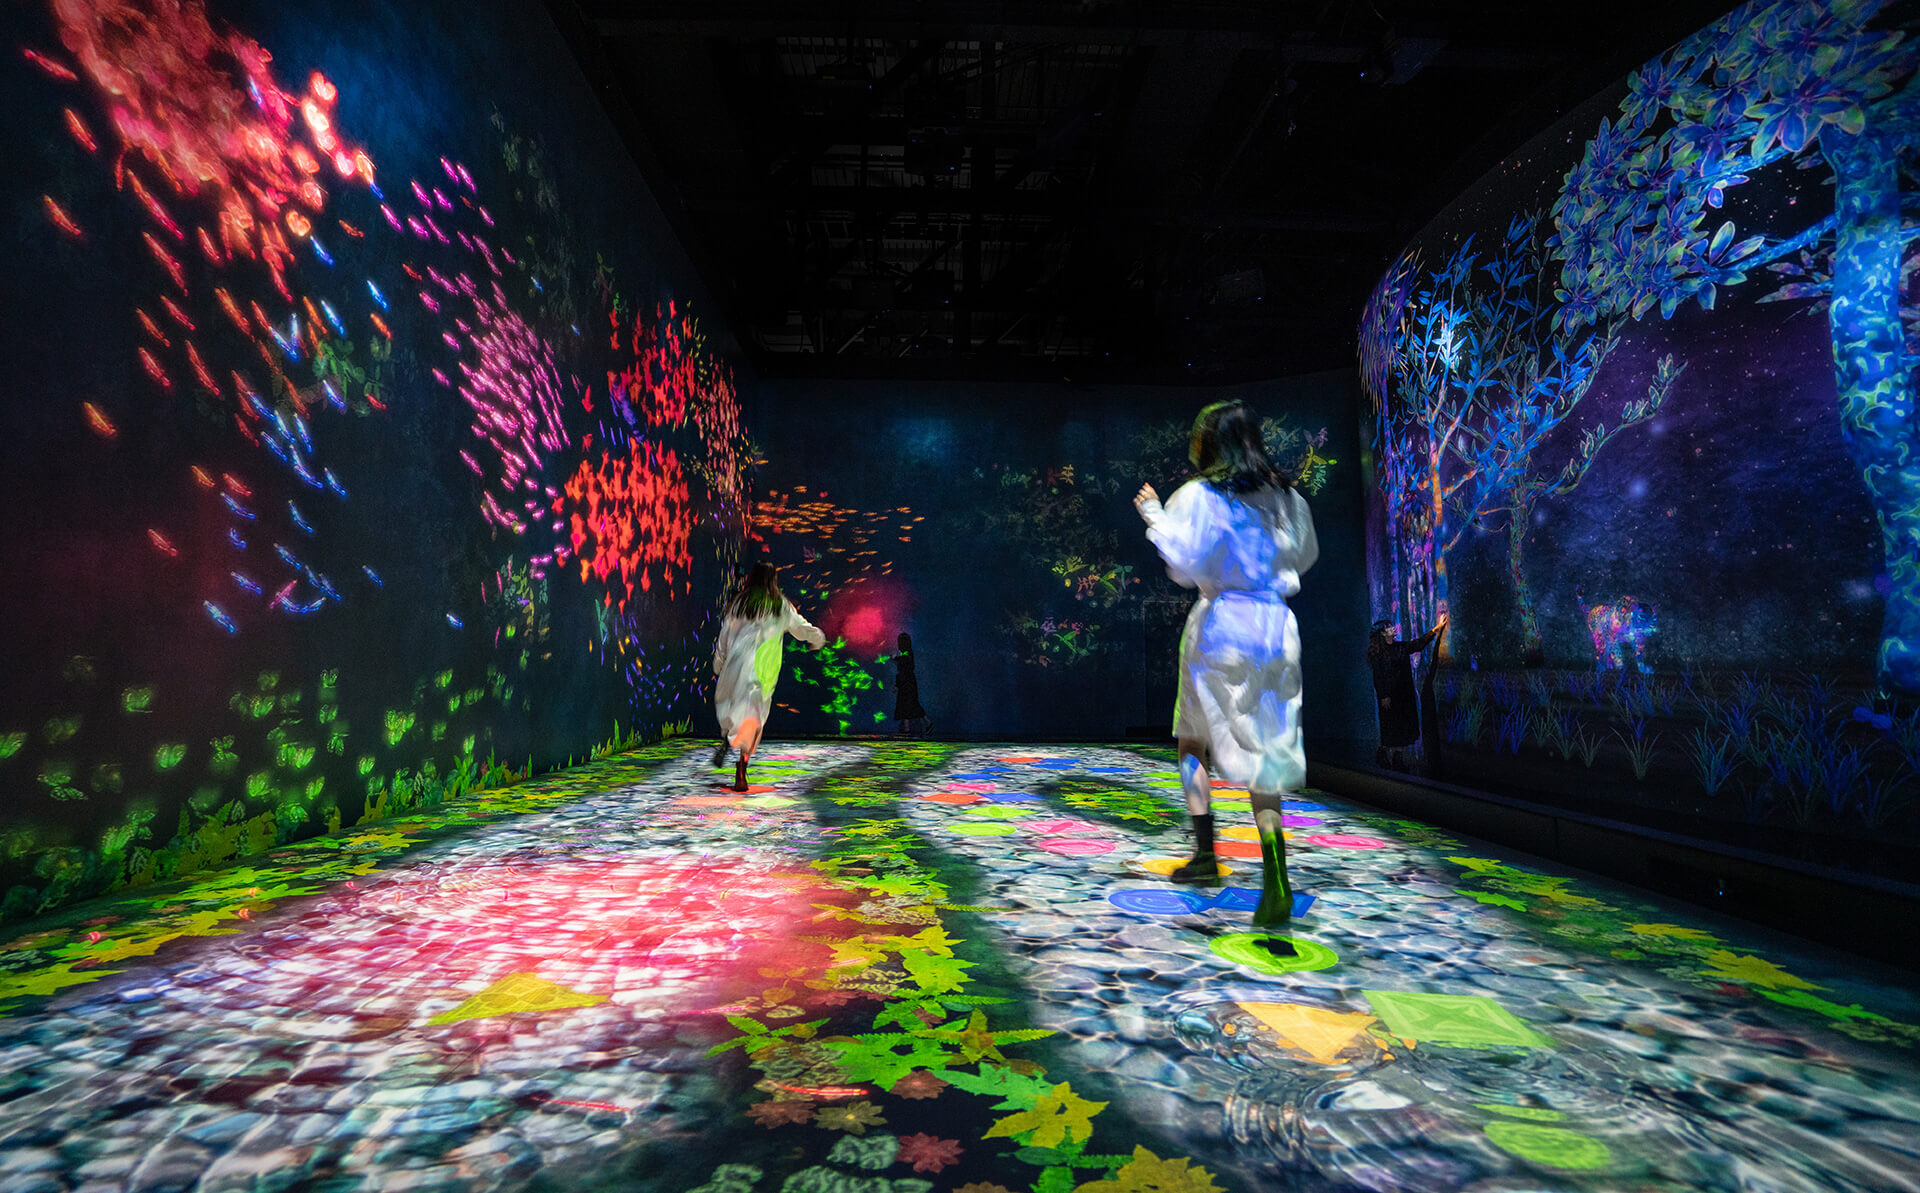 teamLab, Hopscotch for Geniuses: Bounce on the Water | teamLab SuperNature Macao | teamLab | STIRworld